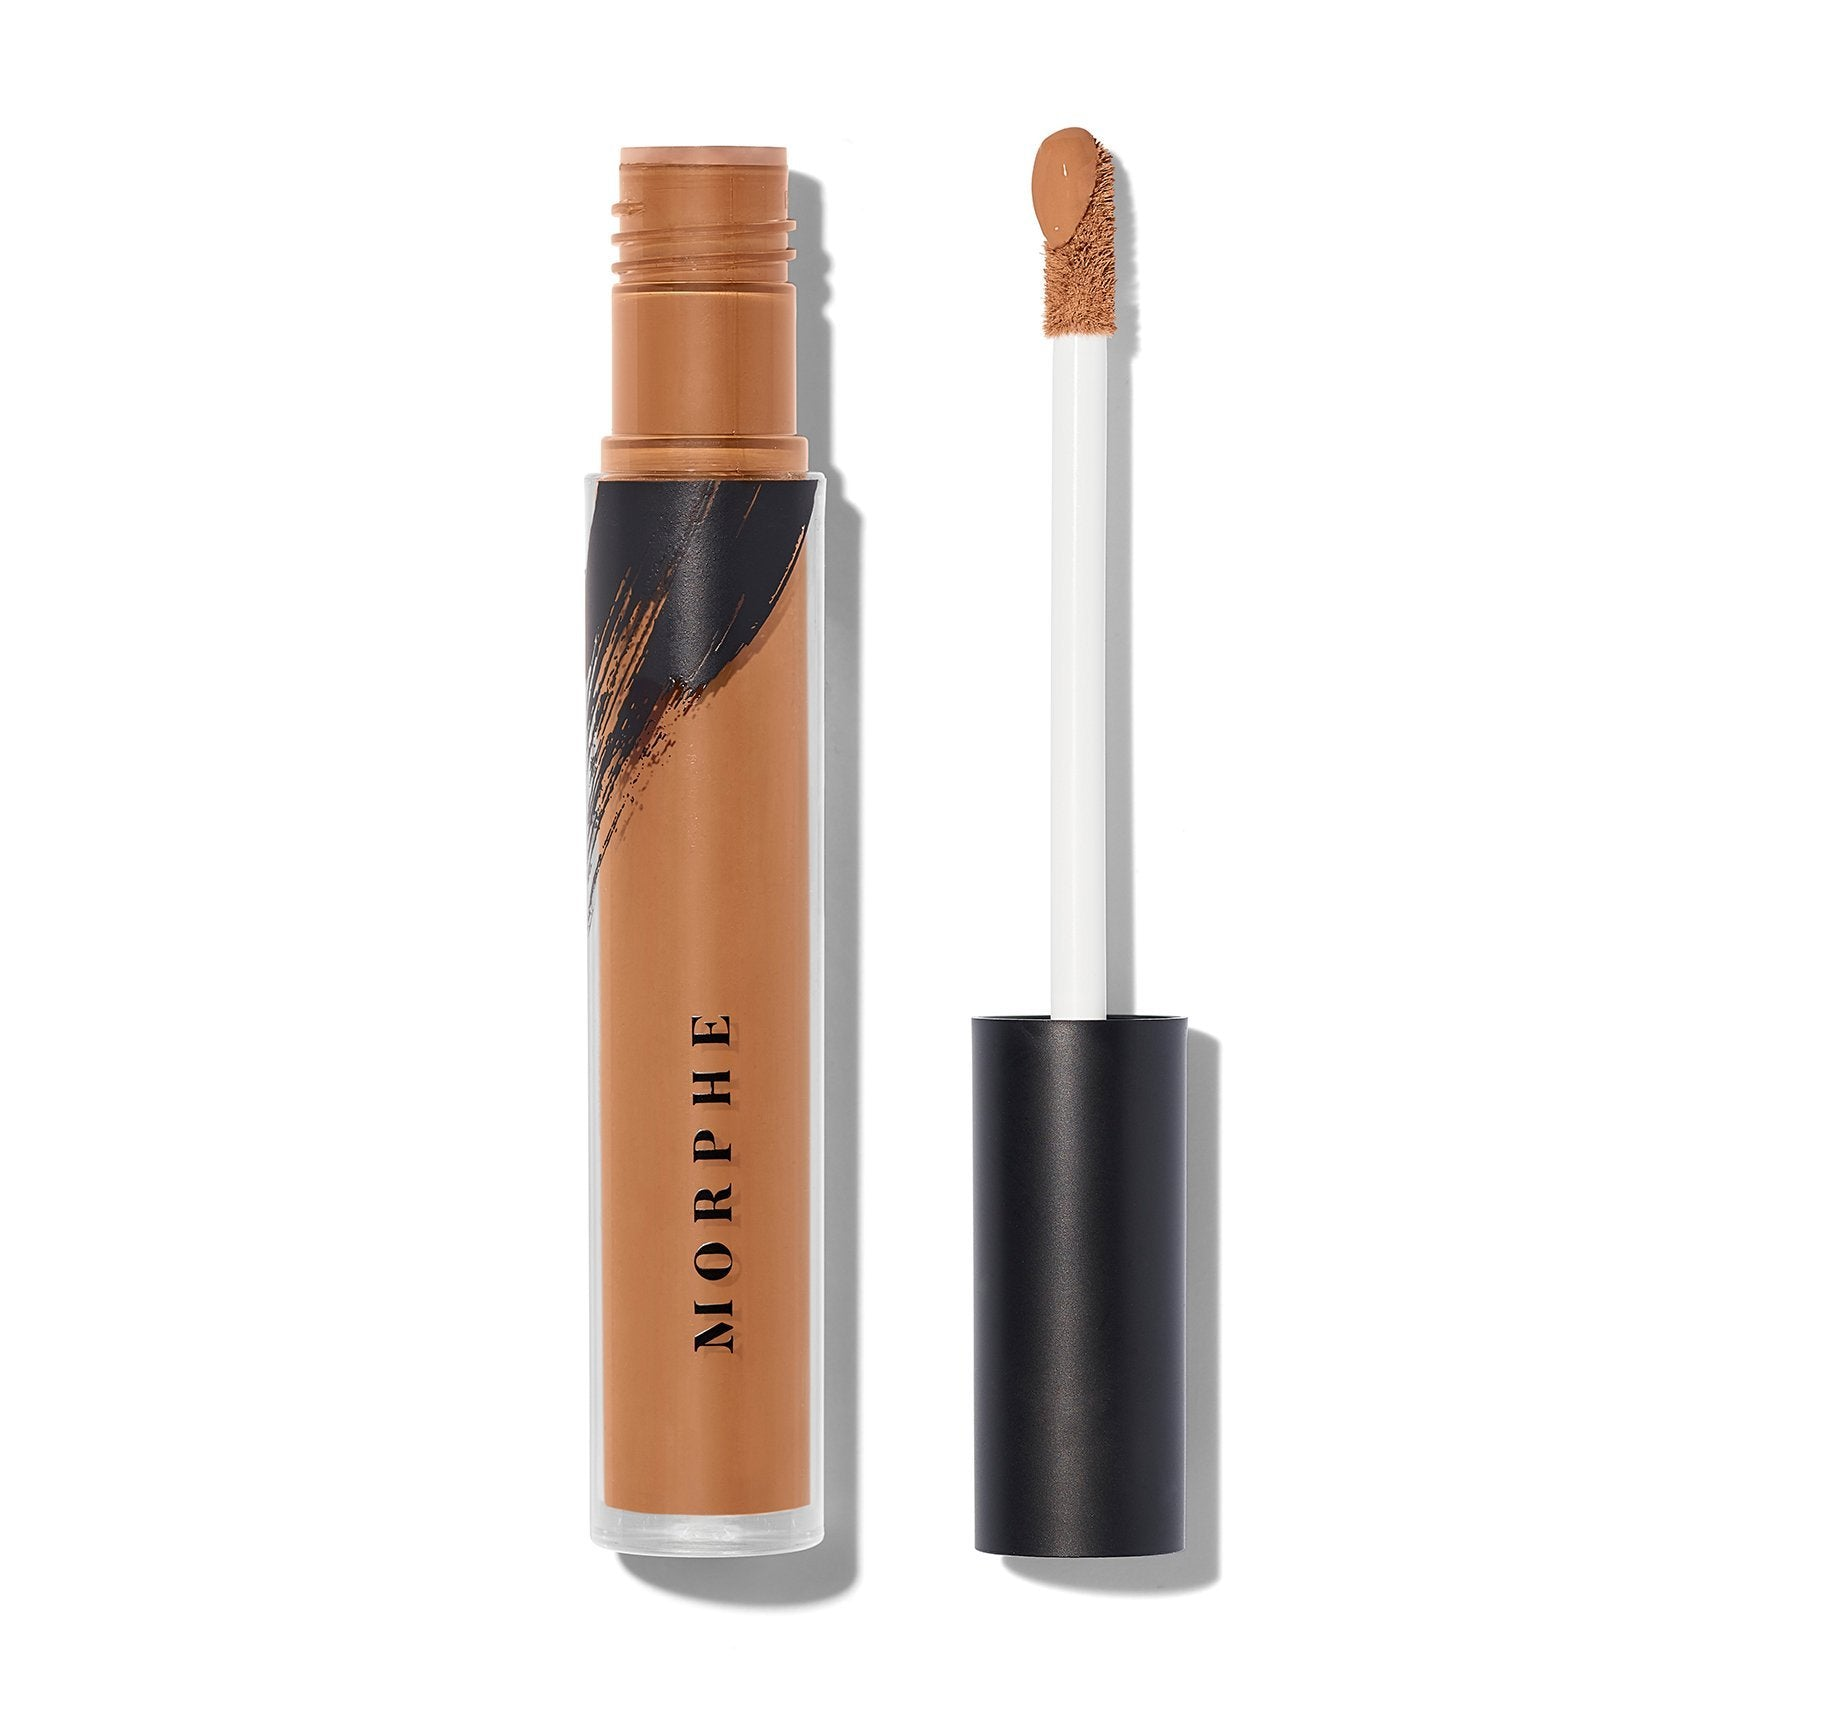 FLUIDITY FULL-COVERAGE CONCEALER - C3.65, view larger image